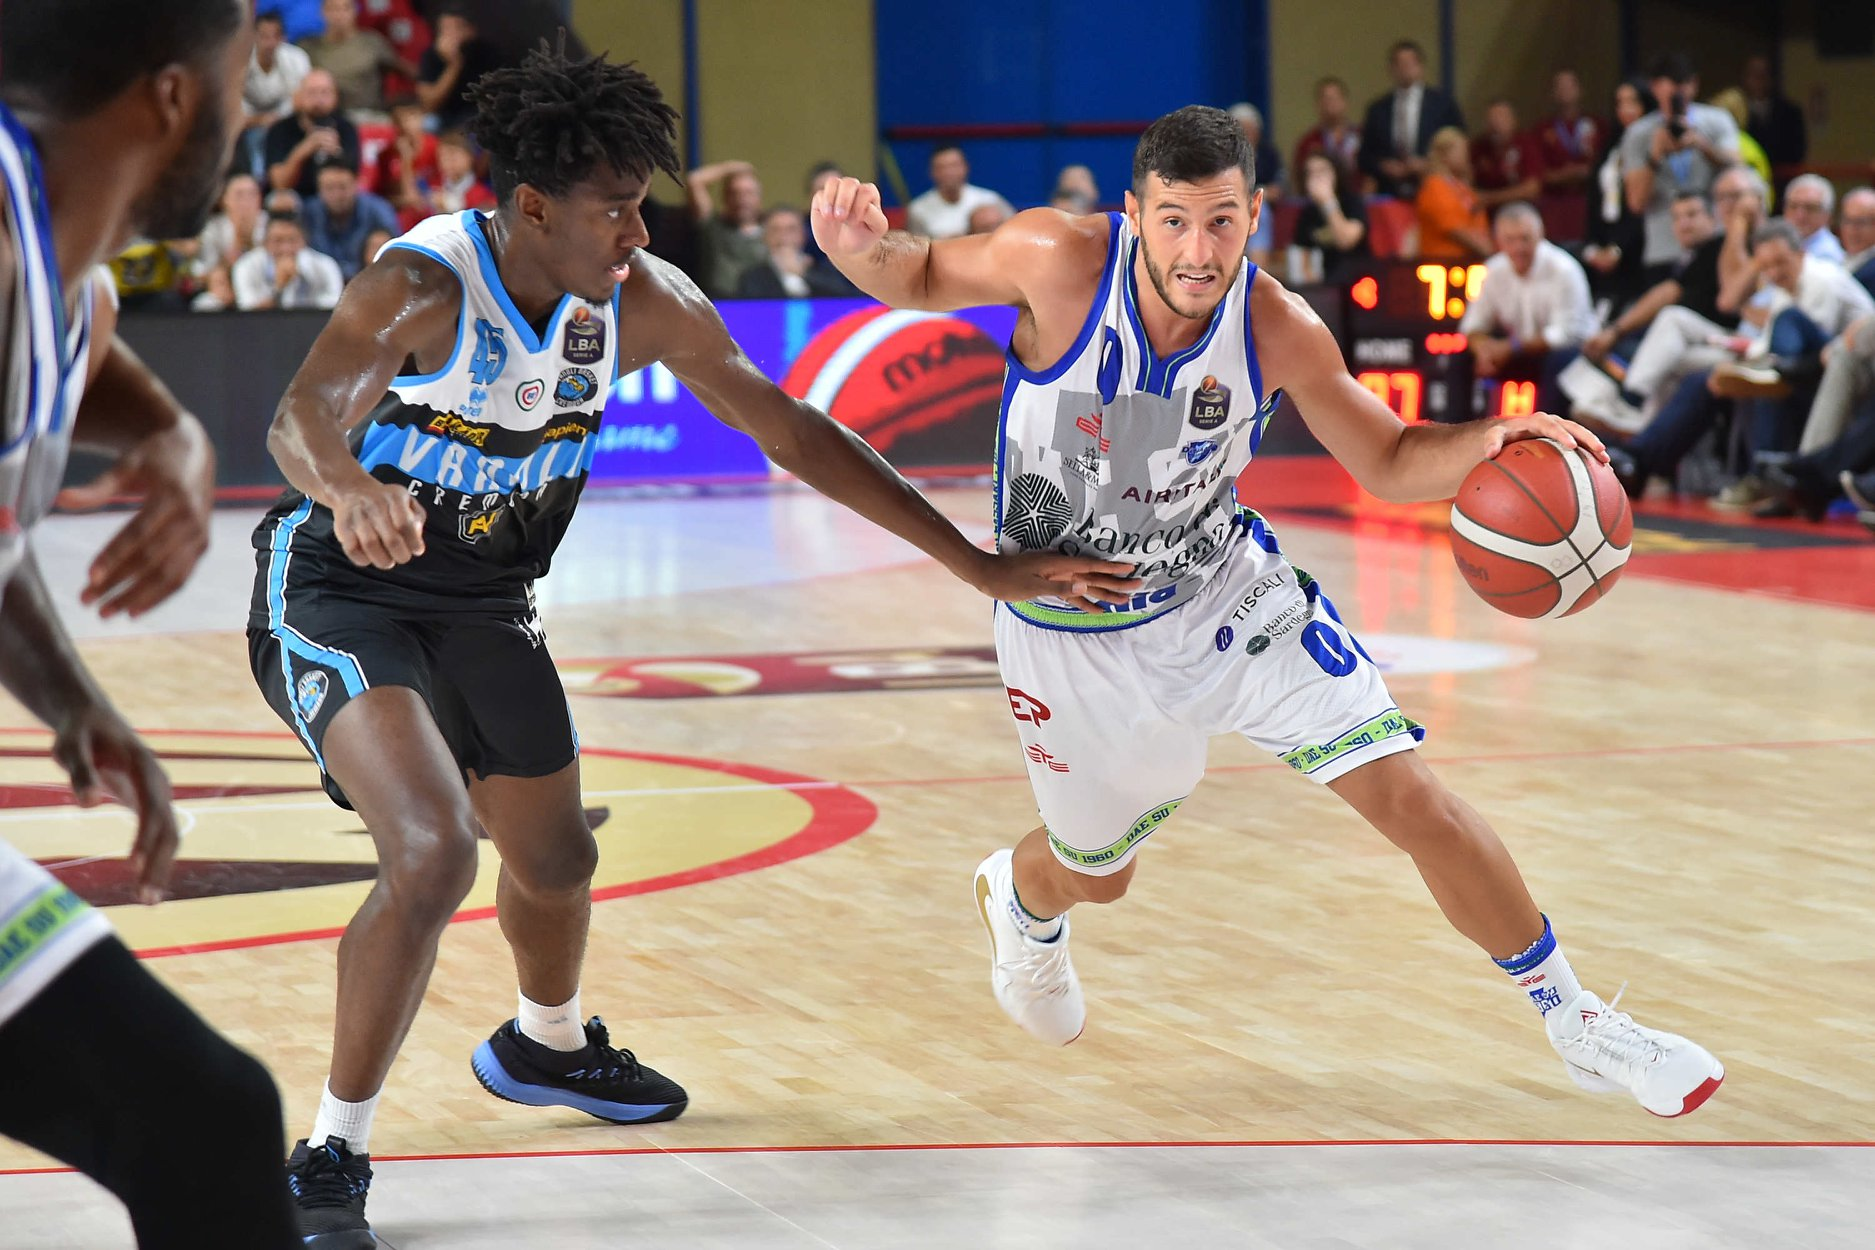 A game action during the semi-final between Sassari and Cremona